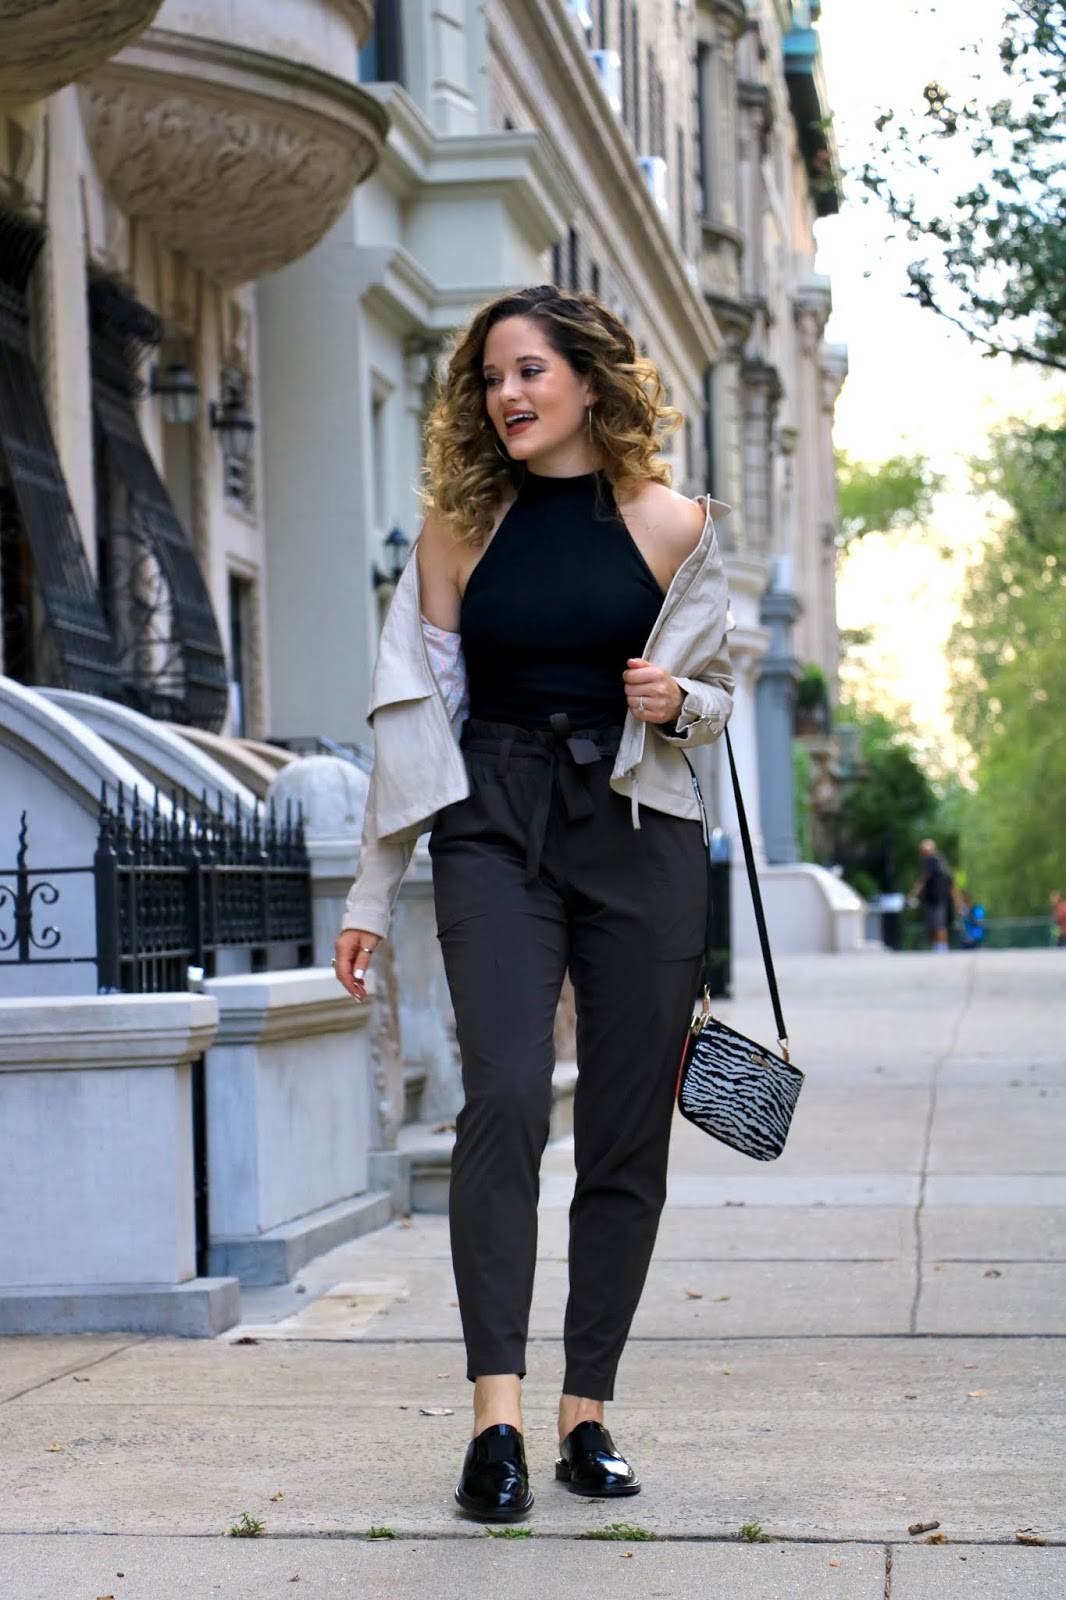 Nyc fashion blogger Kathleen Harper's fall outfit inspiration.